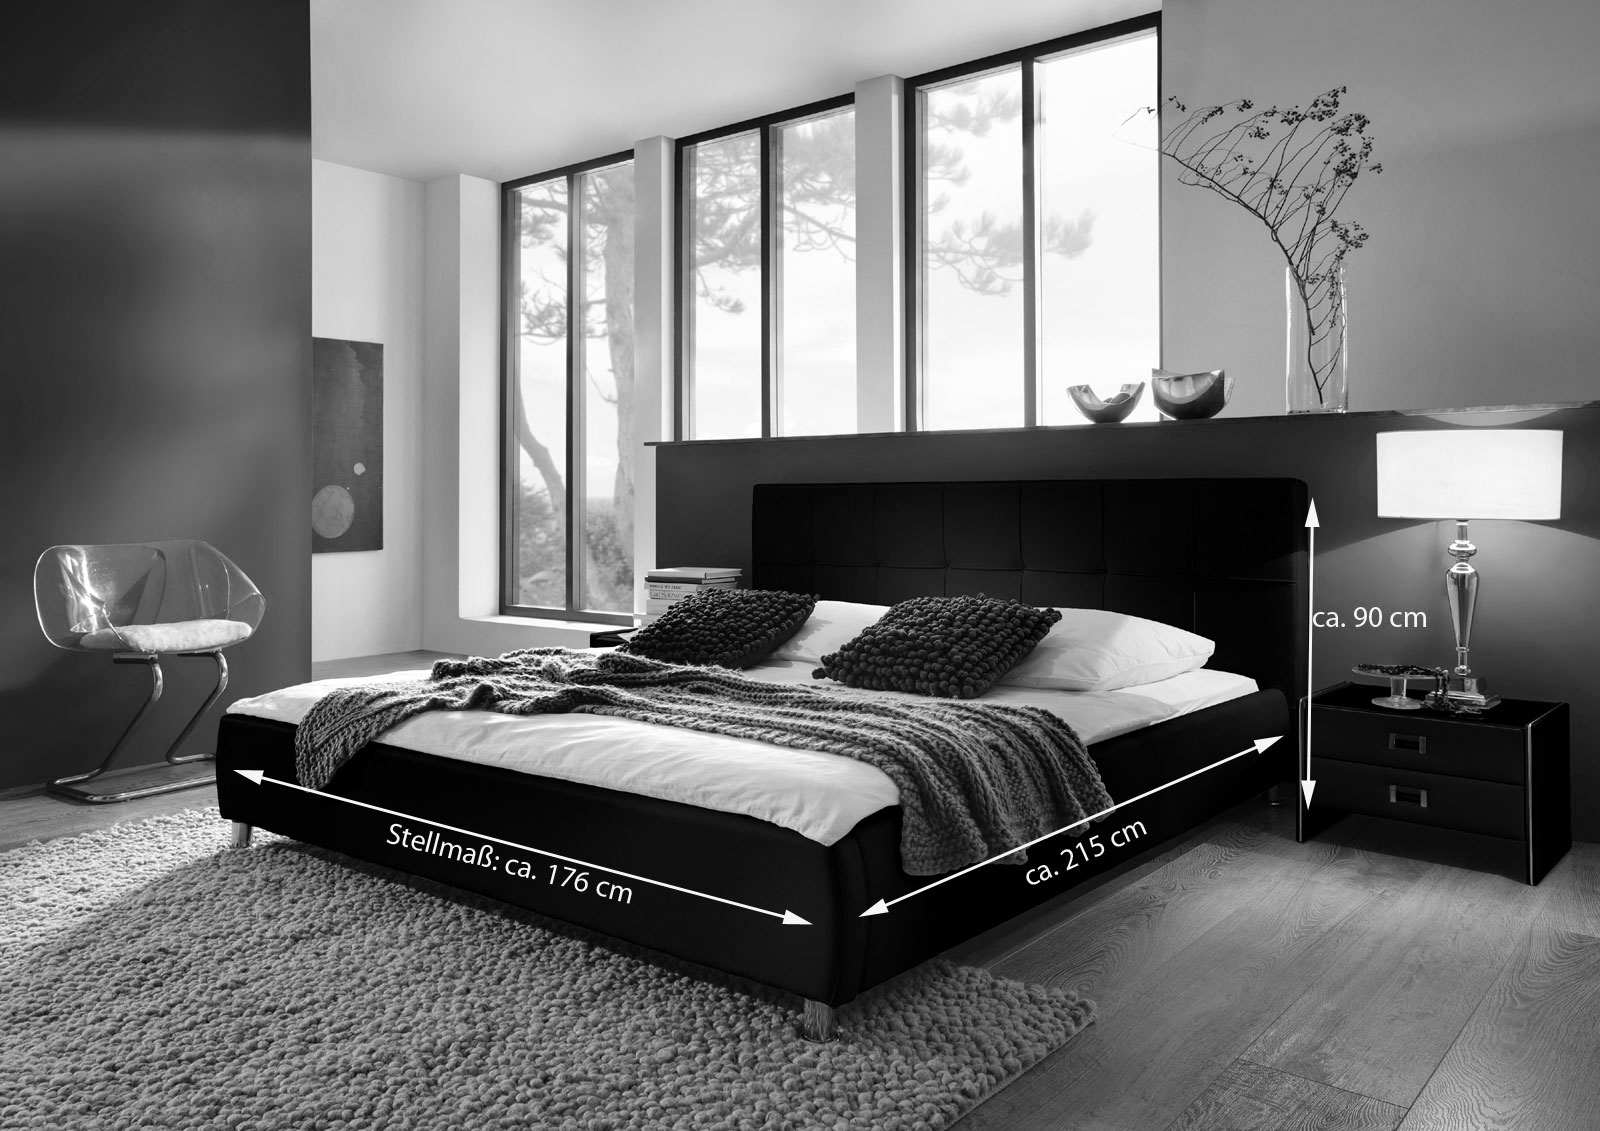 sam polsterbett 160x200 cm schwarz bettgestell g nstig zarah. Black Bedroom Furniture Sets. Home Design Ideas